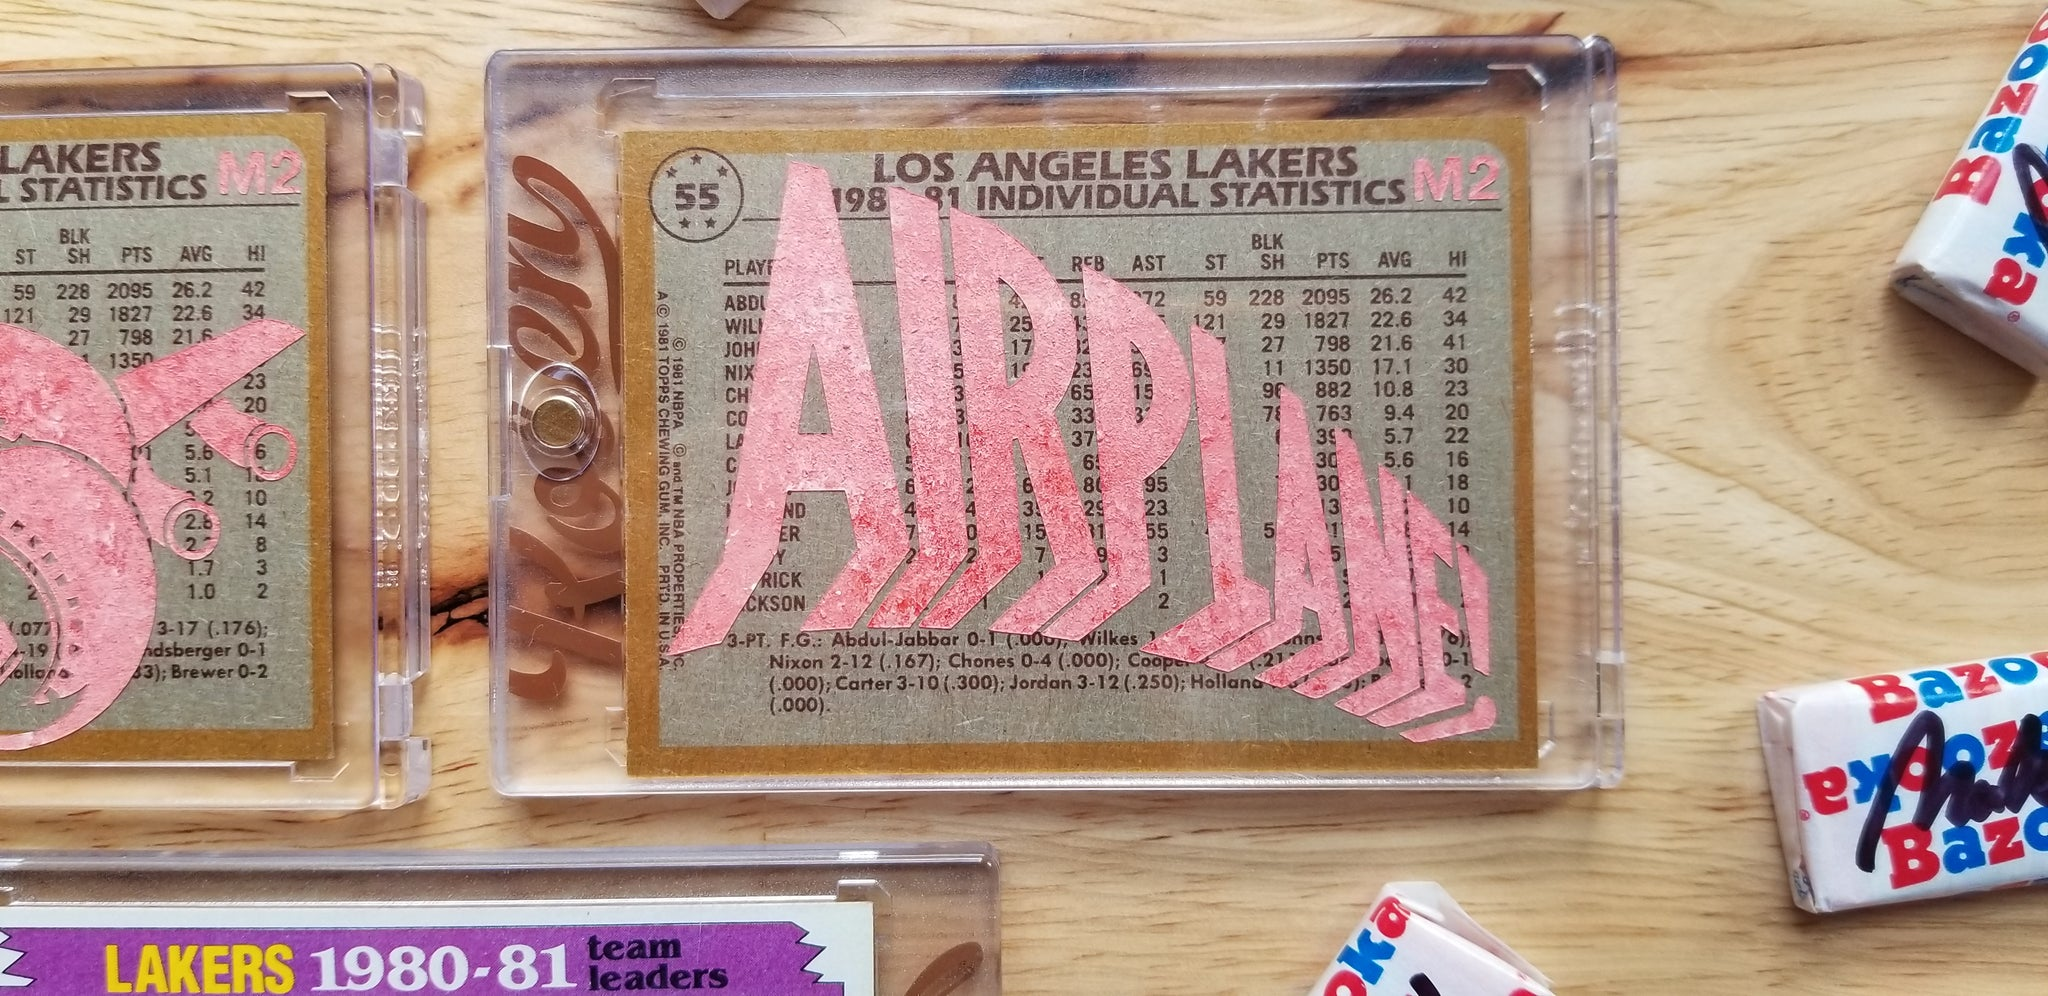 Baseball card art by Matthew Rosen - Kareem Abdul-Jabbar Airplane!